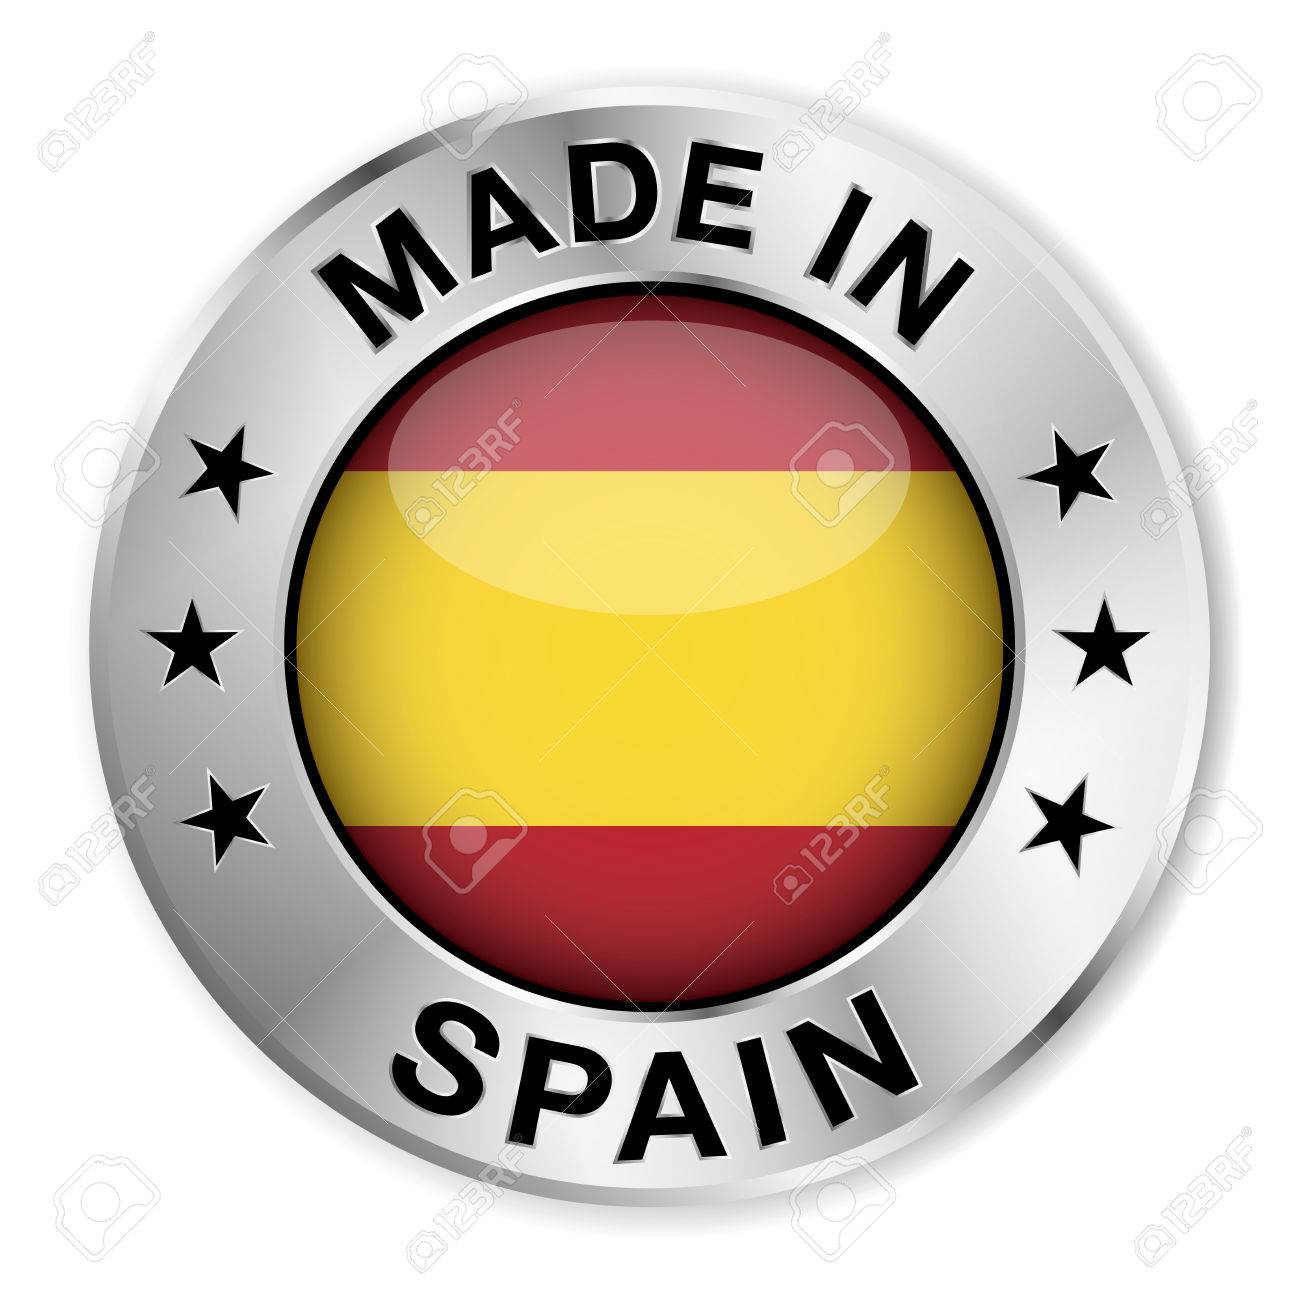 Made In Spain Silver Badge And Icon With Central Glossy Spanish ...